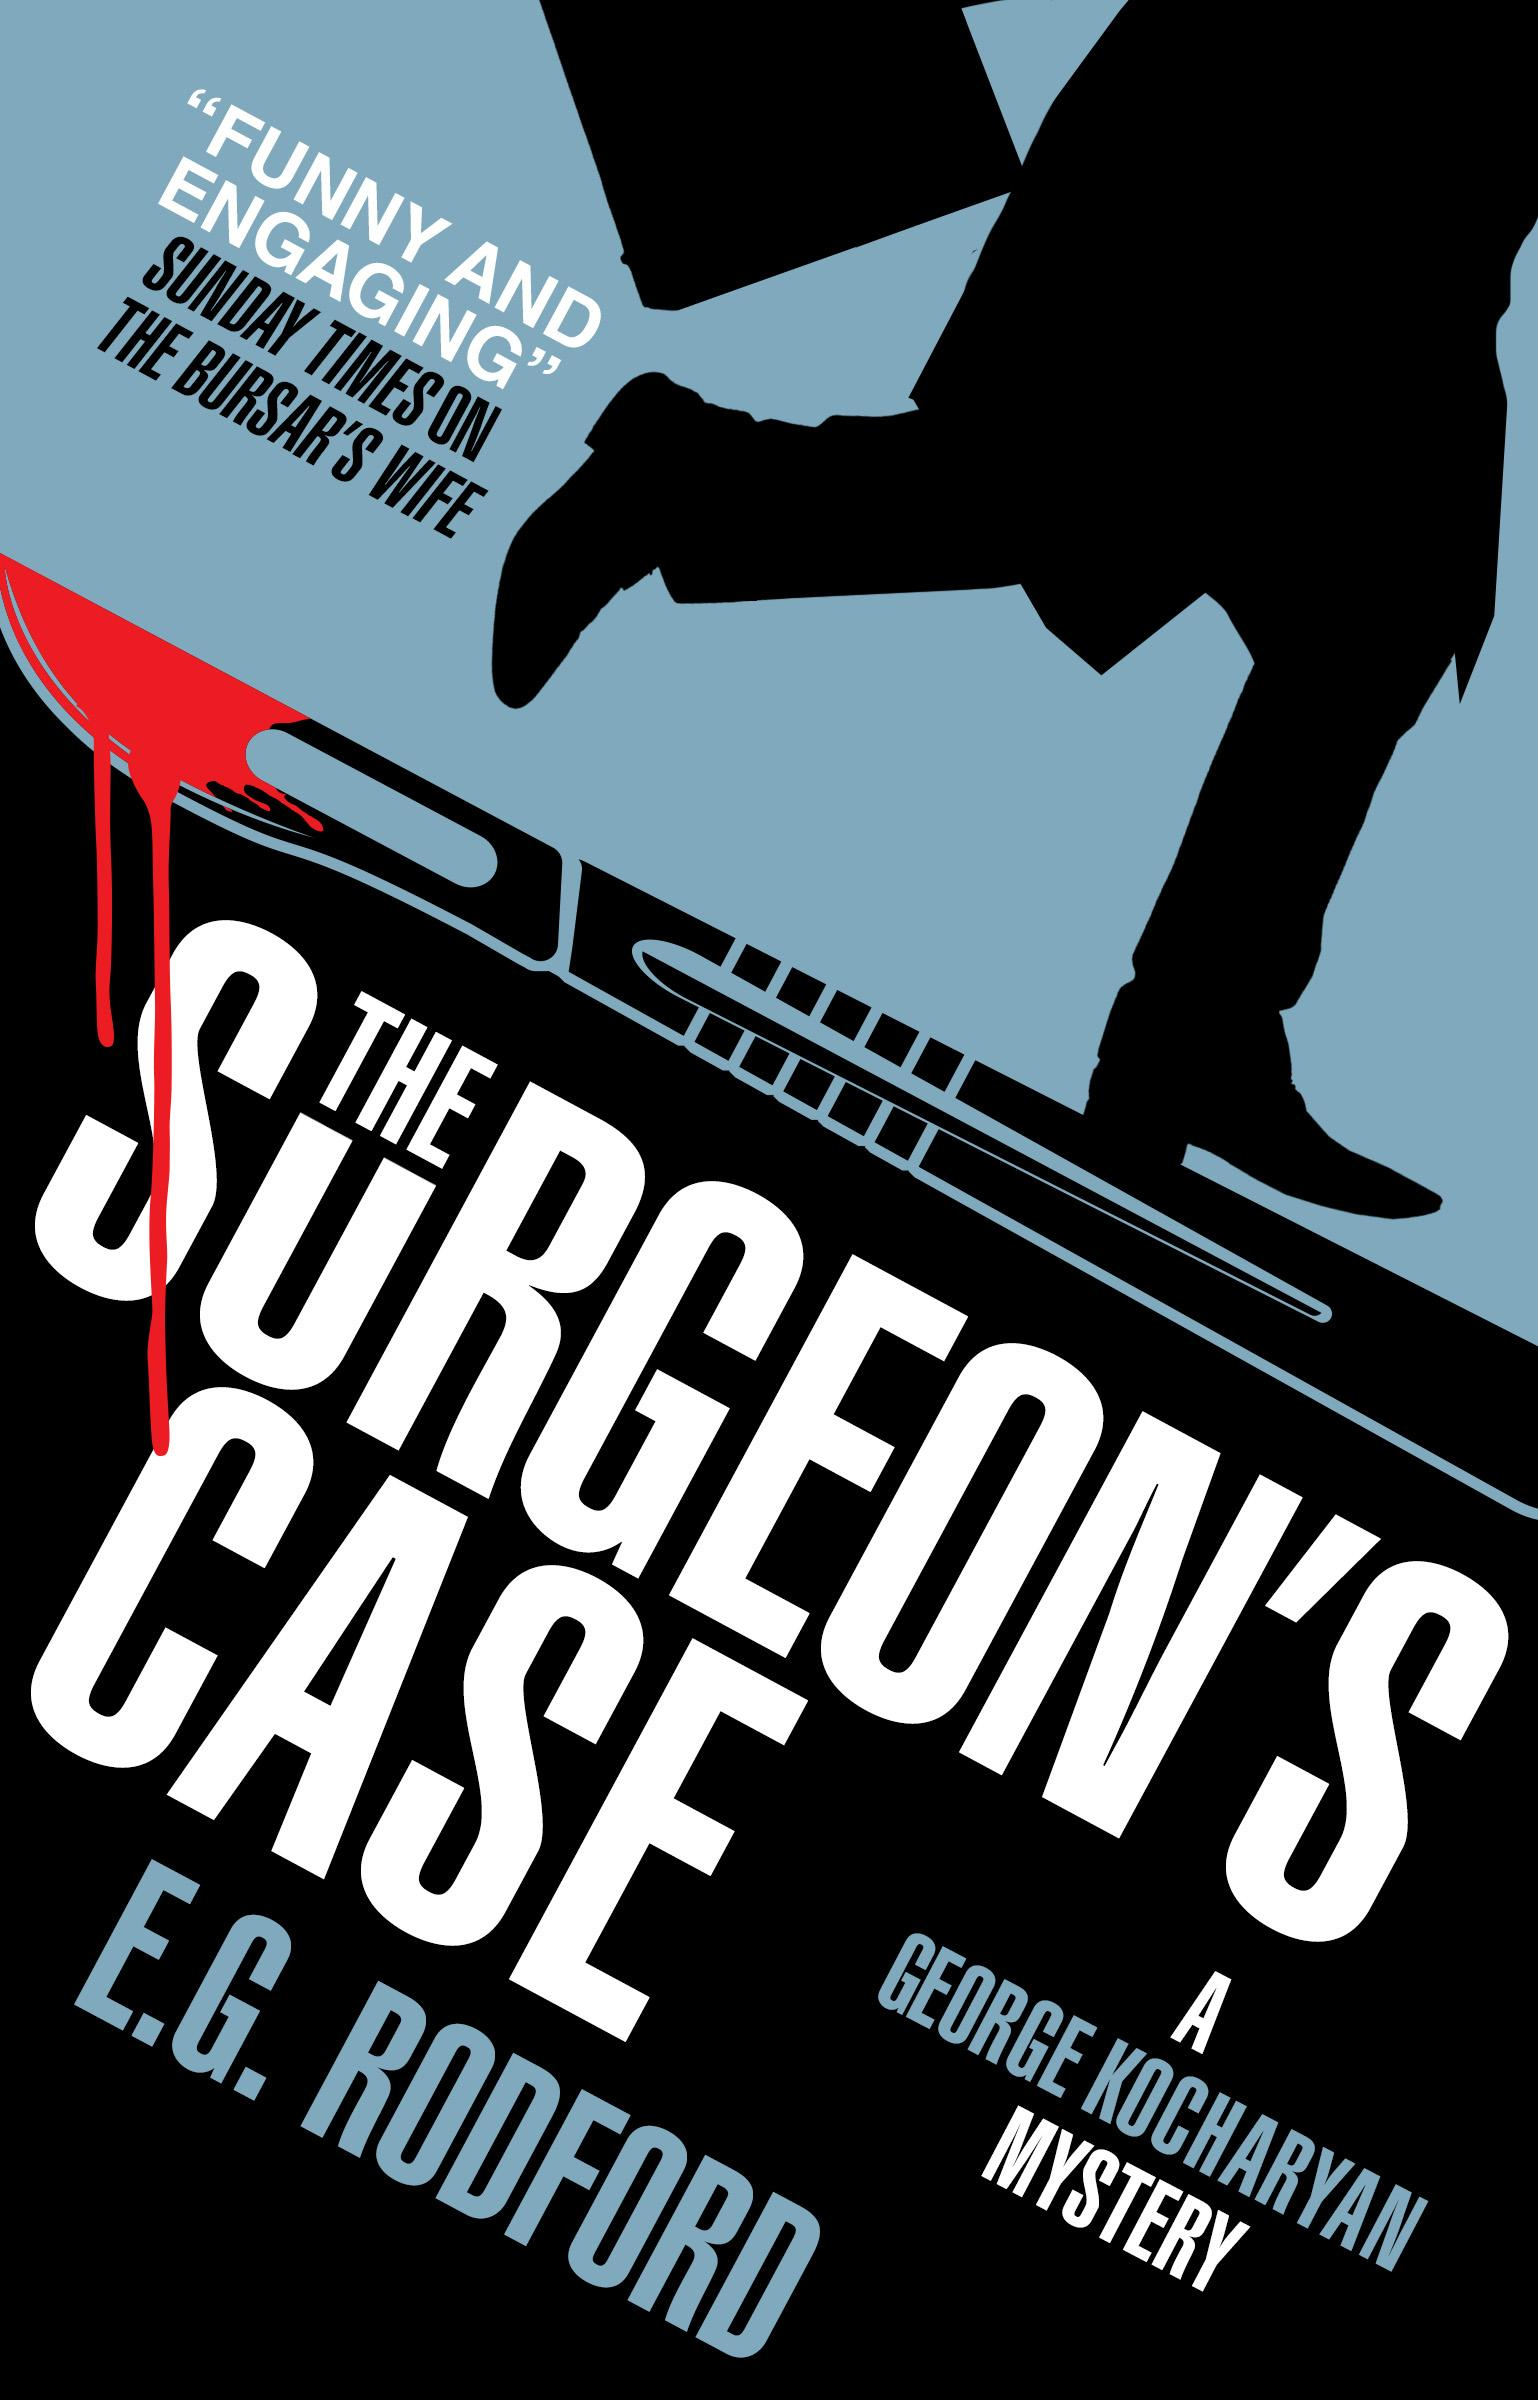 The Surgeon's Case (George Kocharyan Mystery 2) fragile lives a heart surgeon's stories of life and death on the operating table